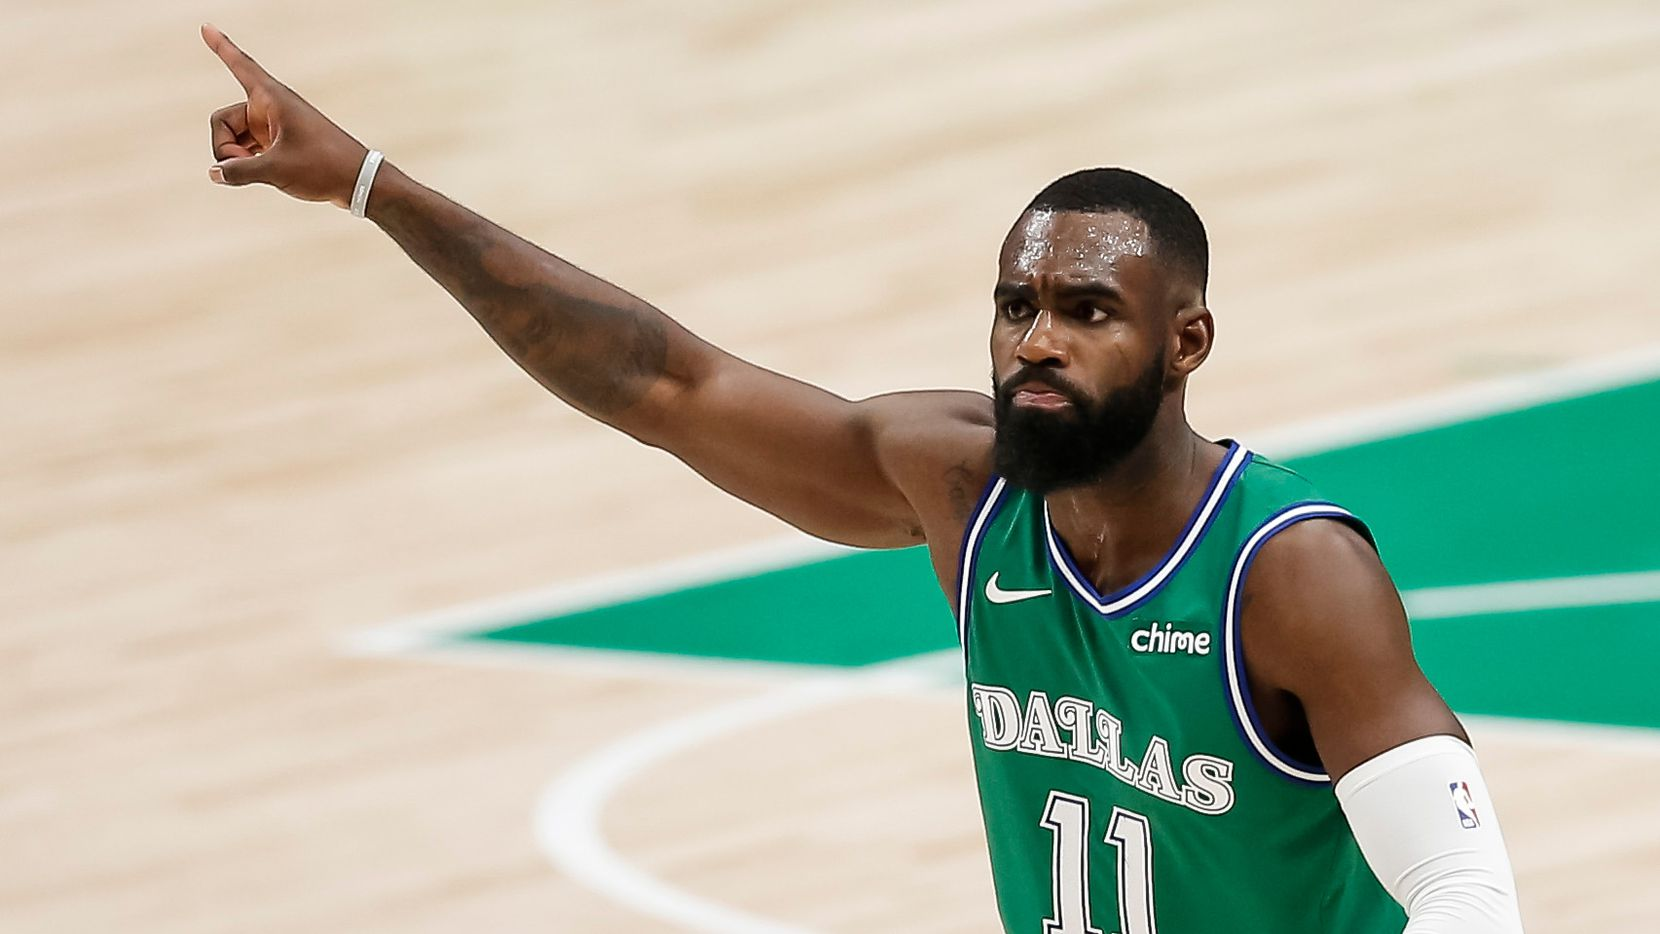 Dallas Mavericks forward Tim Hardaway Jr. (11) celebrates scoring a three-point shot during the second half of an NBA basketball game in Dallas, Monday, February 22, 2021. Hardaway scored 29 points in the game. Dallas won 102-92.